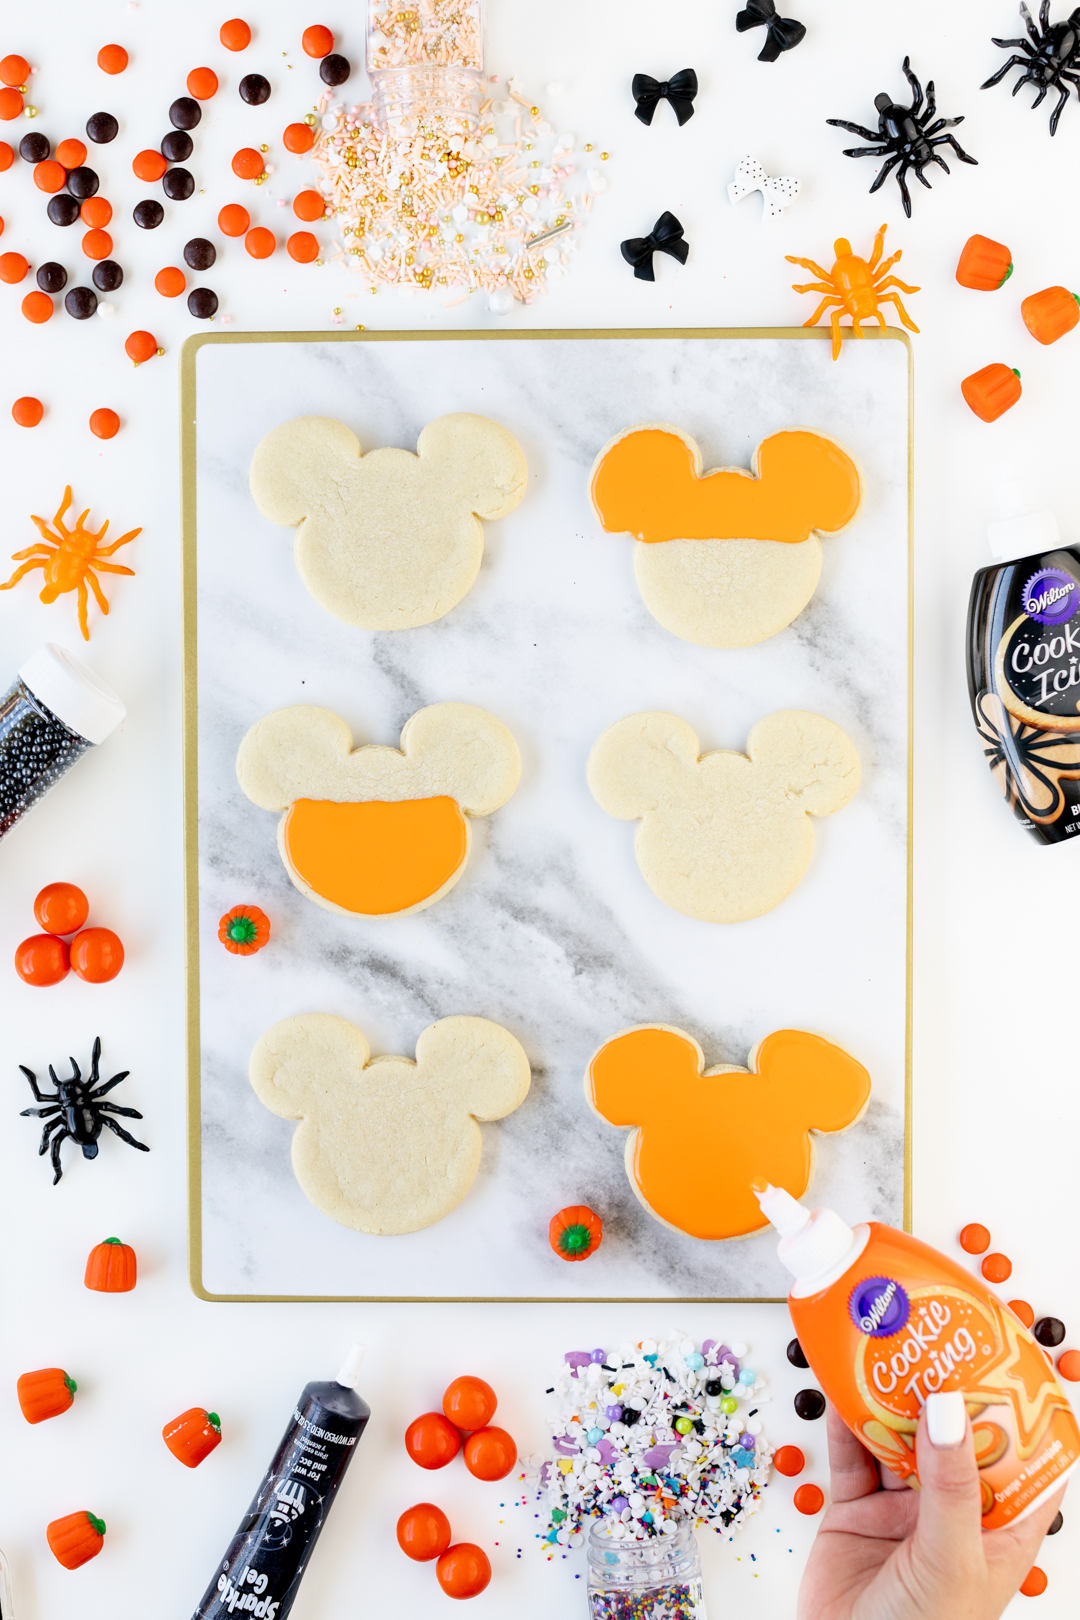 Adding orange icing to mickey mouse shaped cookies.